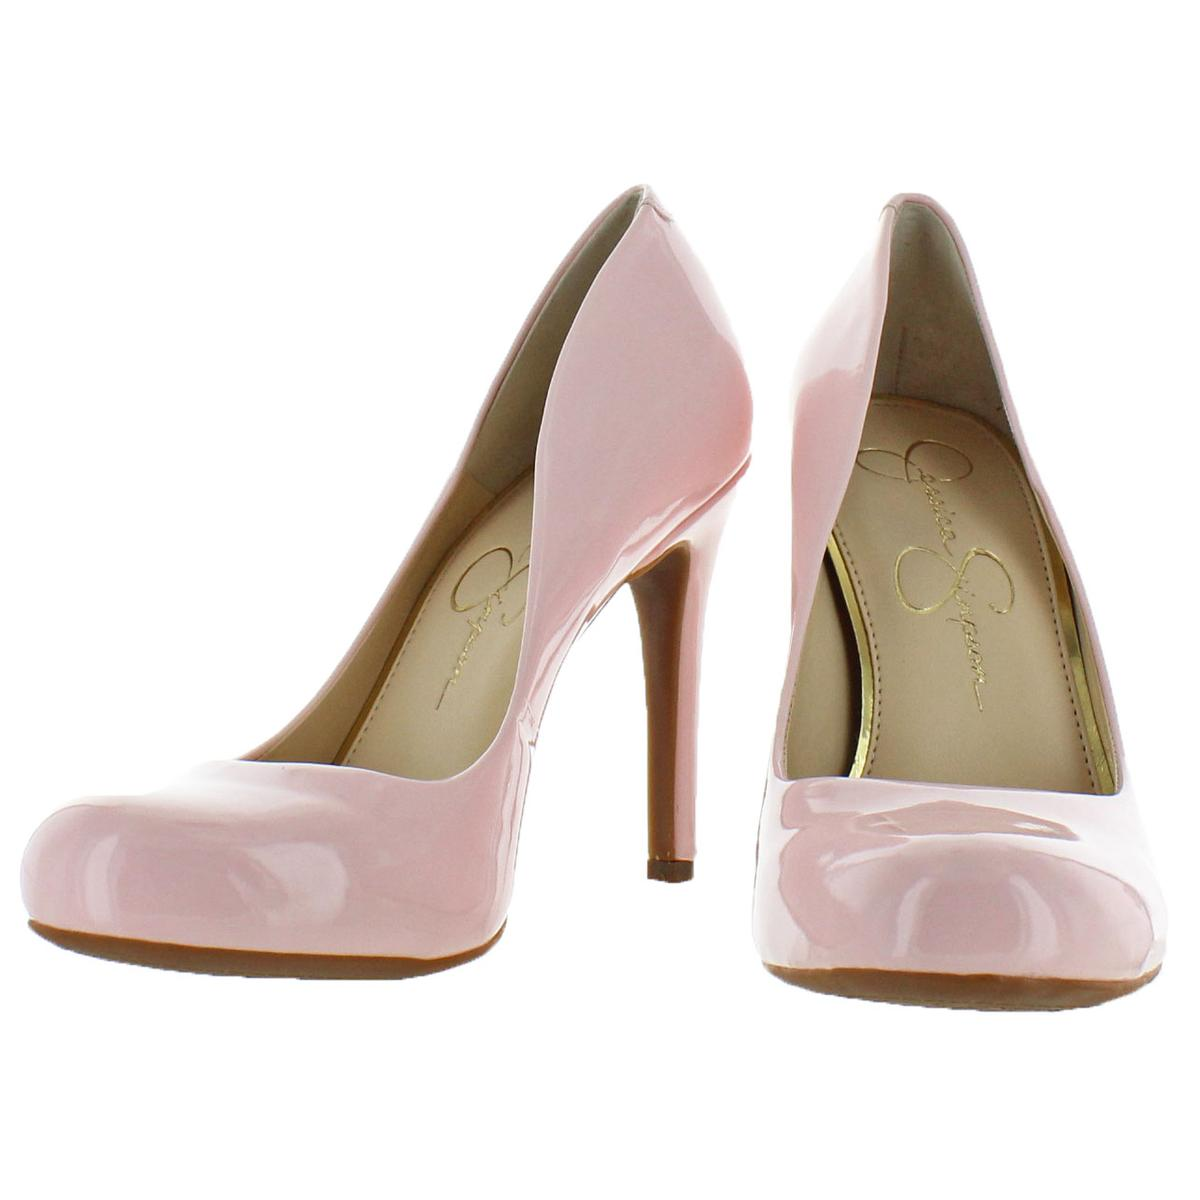 Jessica-Simpson-Women-039-s-Calie-Round-Toe-Classic-Heels-Pumps-Shoes thumbnail 4